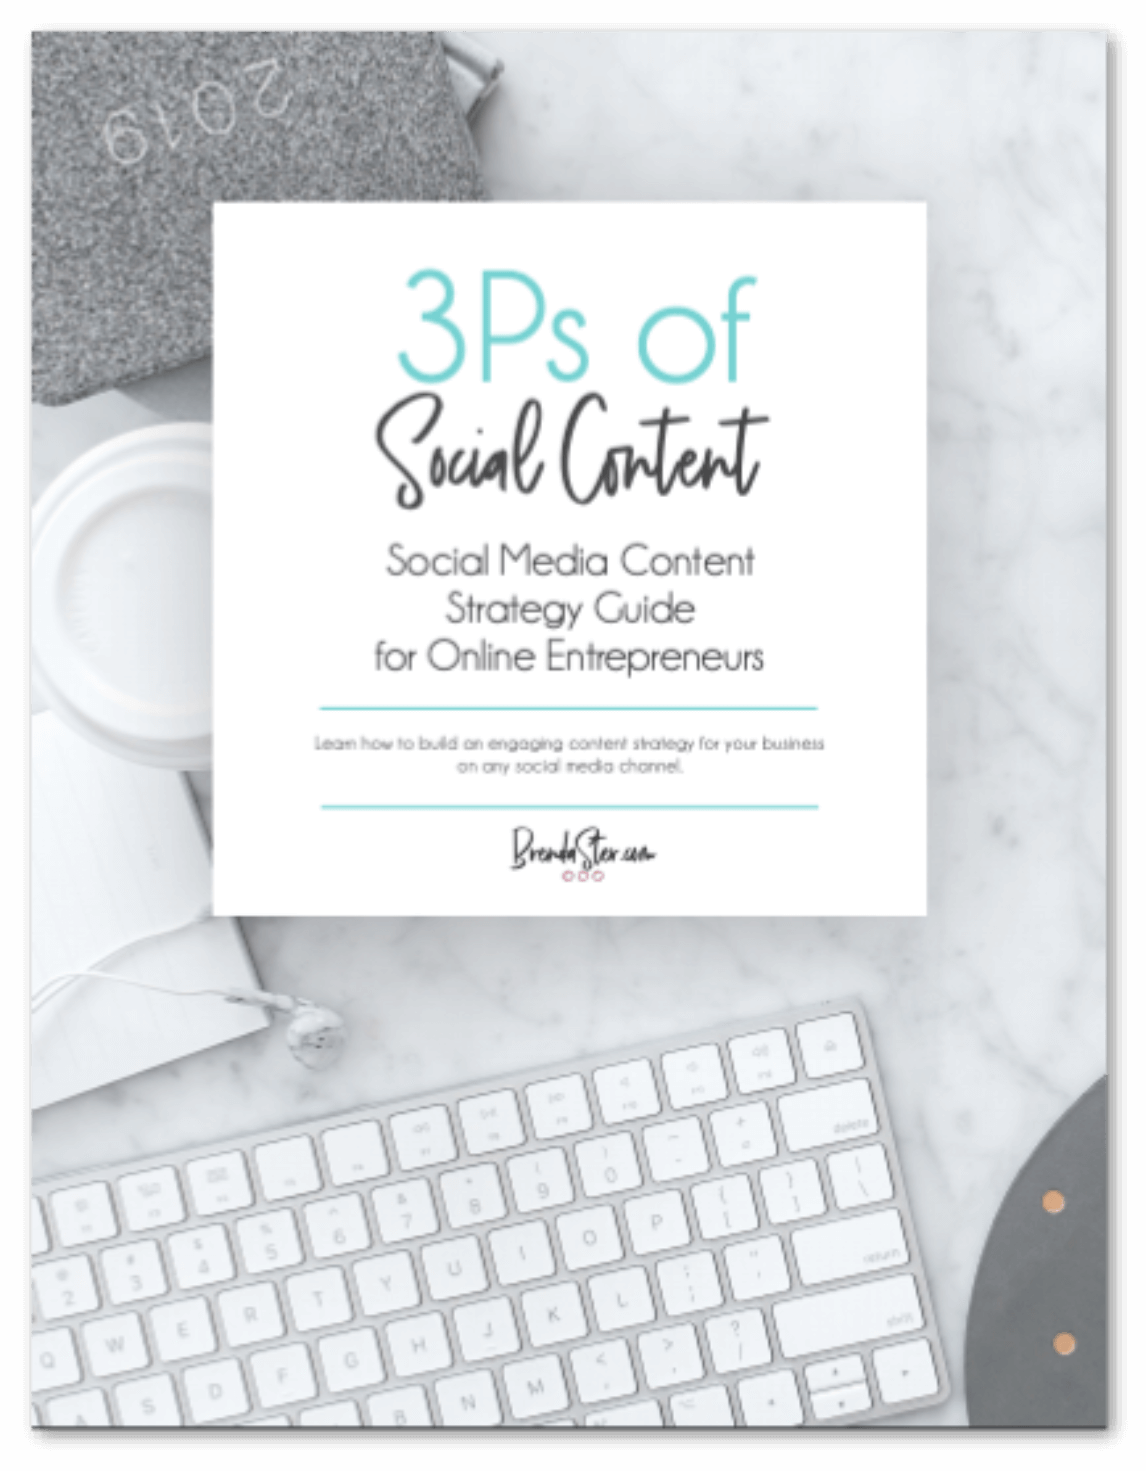 3Ps of Social Content - Free E-Book blog post image